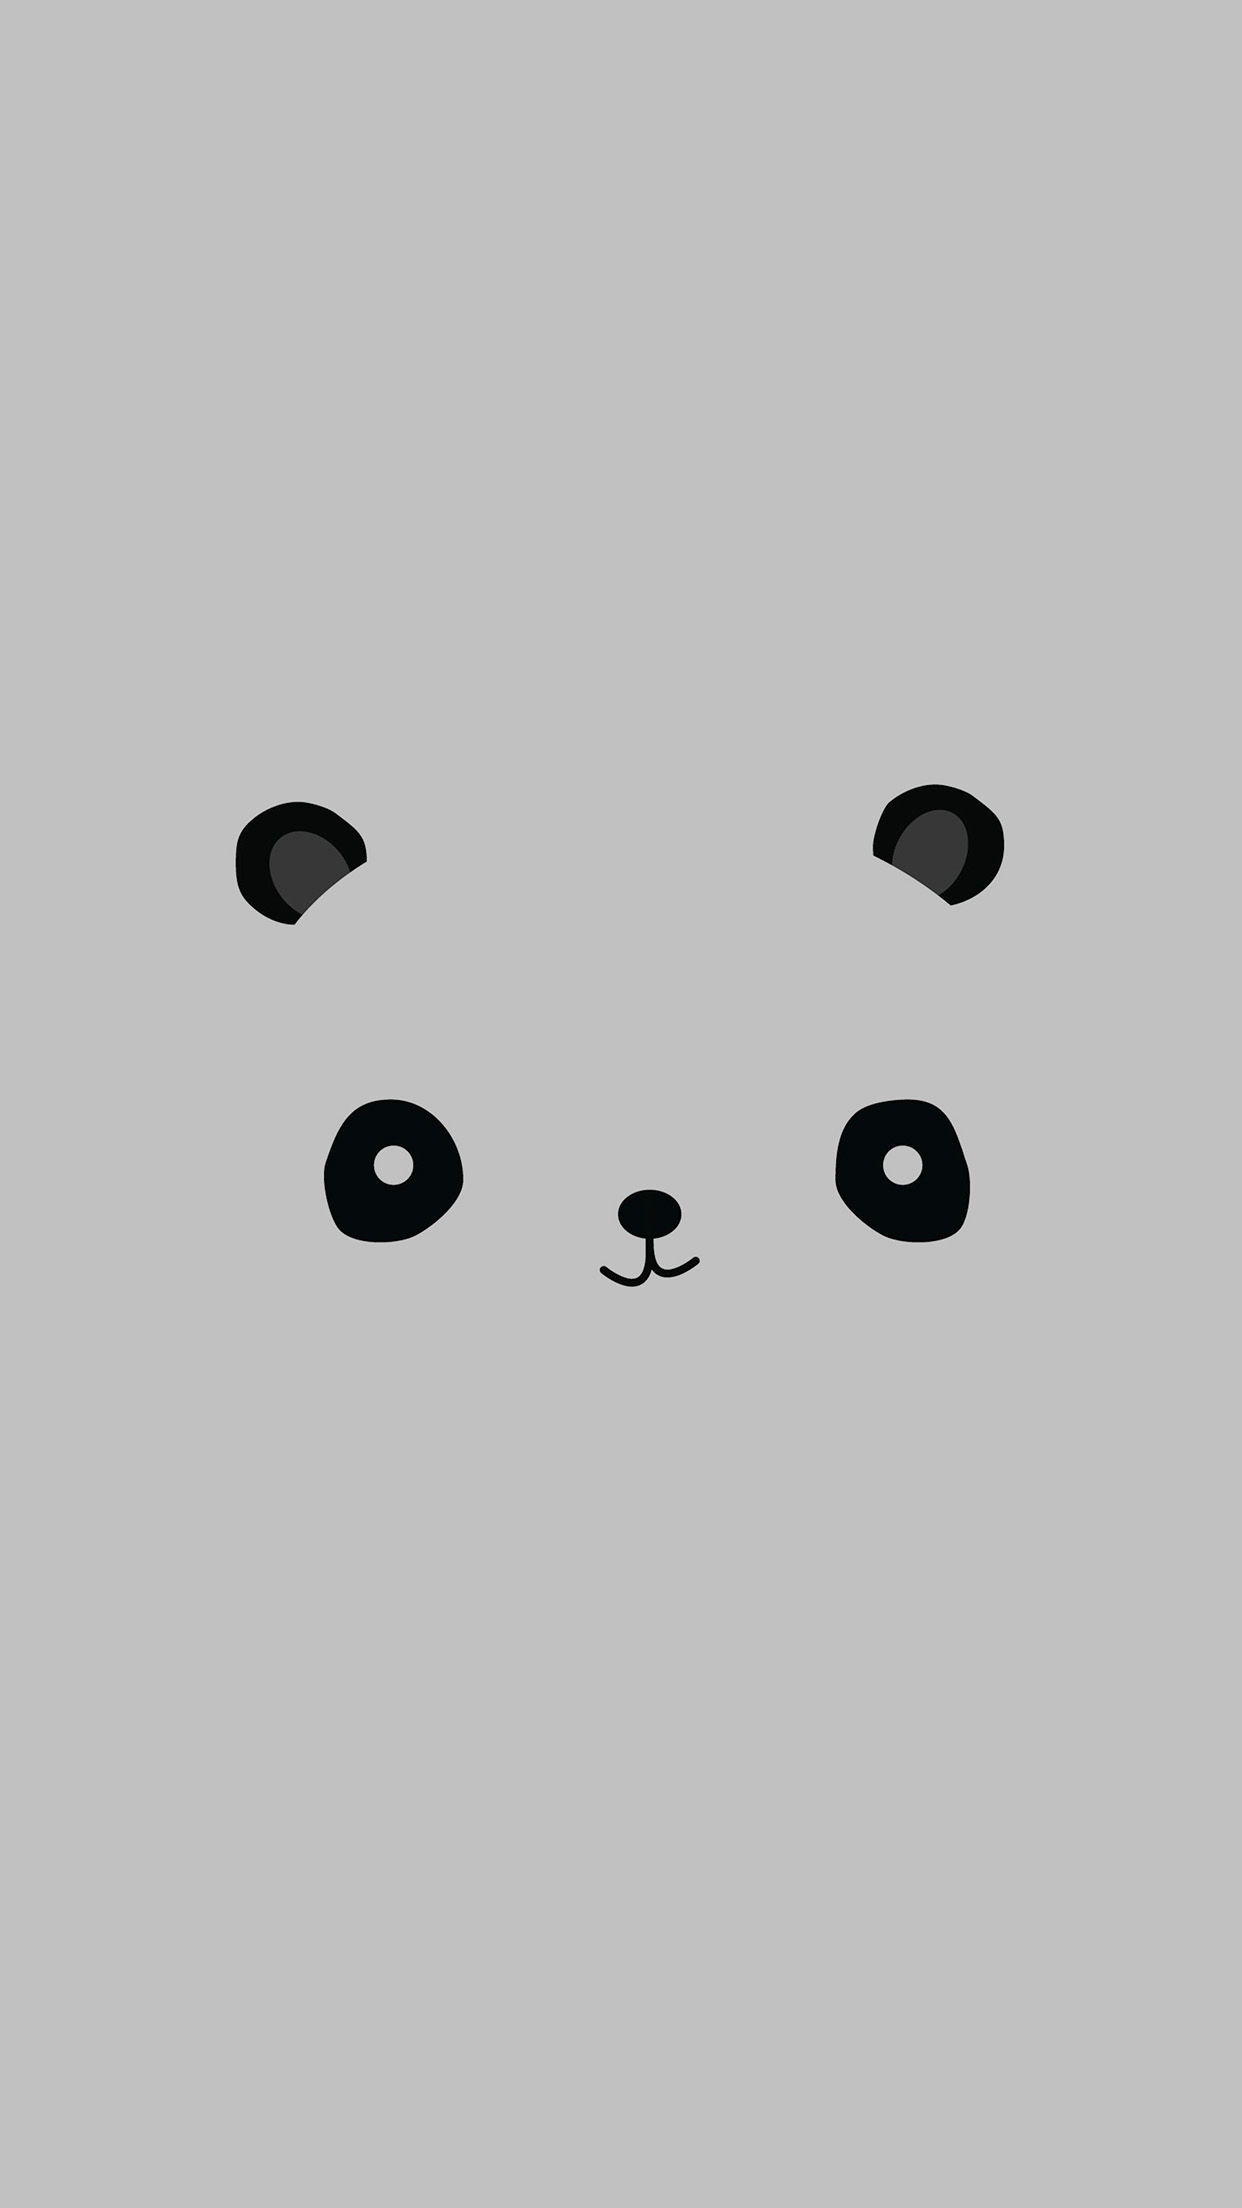 Free Download Cute Minimal Panda Android Wallpaper Download 1242x2208 For Your Desktop Mobile Tablet Explore 49 Kawaii Wallpaper For Android Kawaii Background Wallpaper Cute Wallpaper For Phone Anime Android Wallpaper